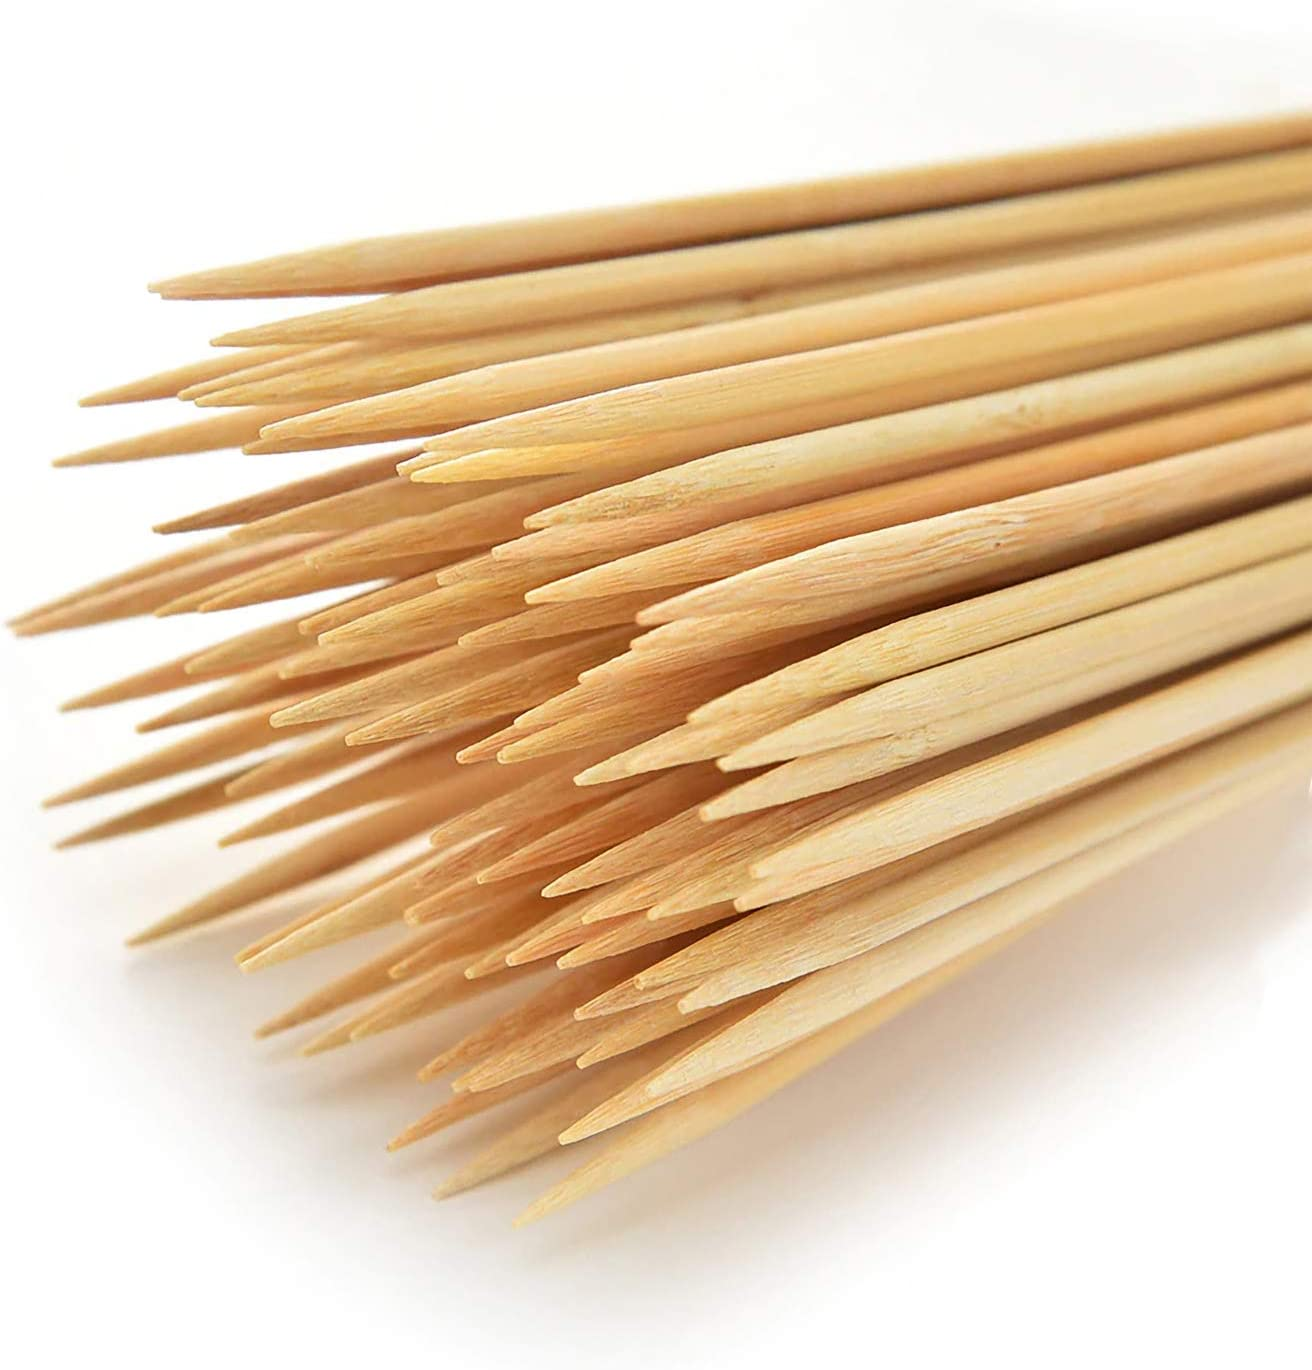 SAILAVY 100PCS Natural Bamboo Skewer Sticks, 12IN (Φ= 4mm) Premium Wooden Kabob Skewers for Barbecue, Grilling, Corn Dog, Fruit, Appetizer, Chocolate Fountain and Crafting